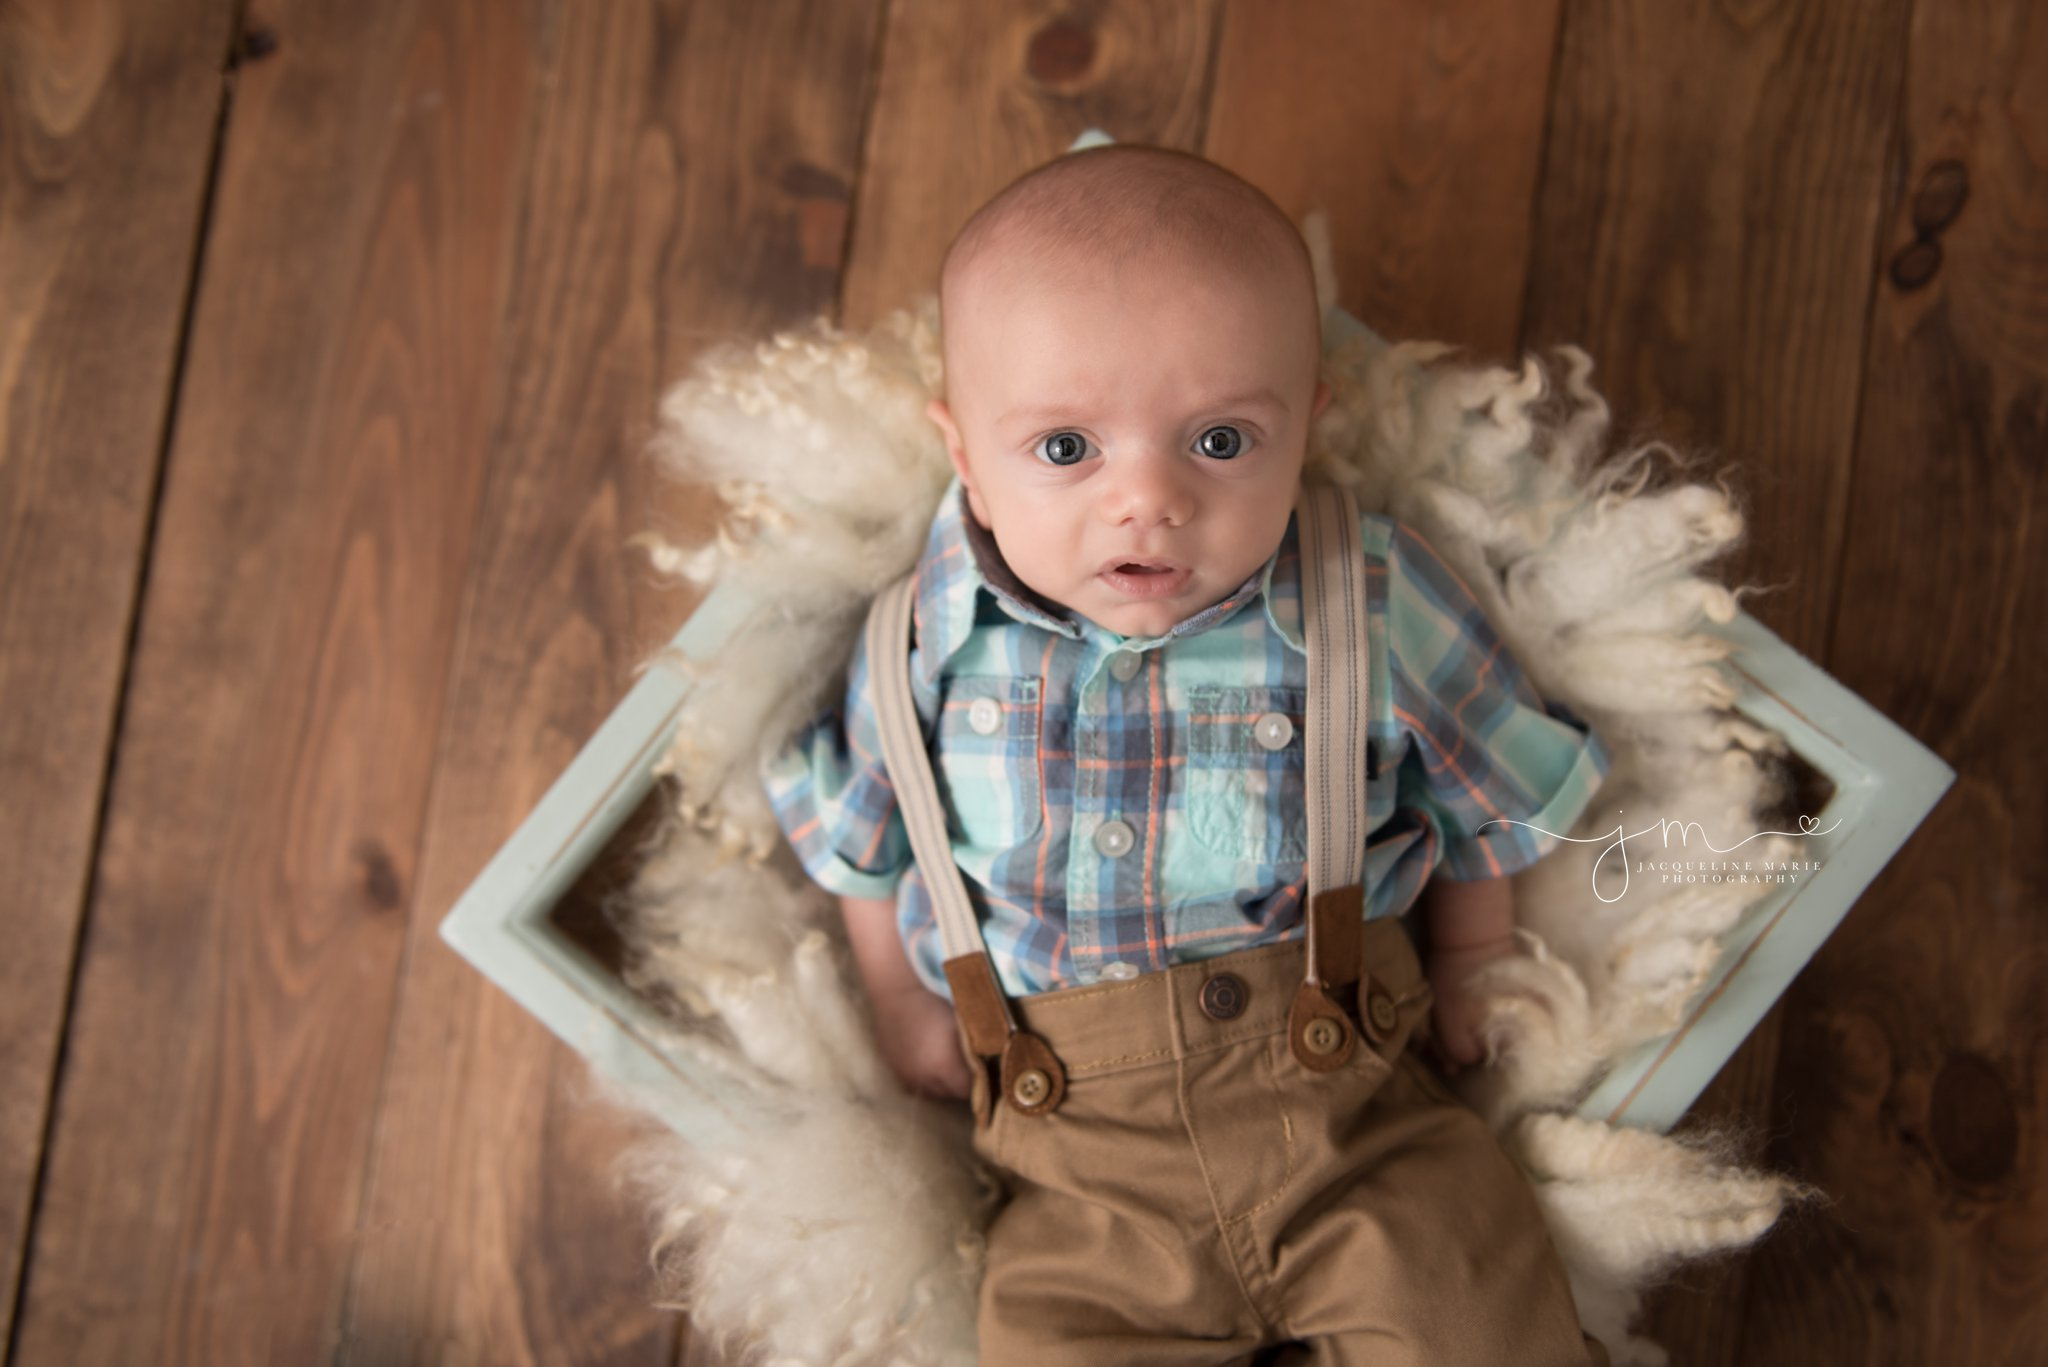 3 month old baby boy with blue eyes is posed in blue wooden prop on wood floor in columbus ohio at jacqueline marie photography studio